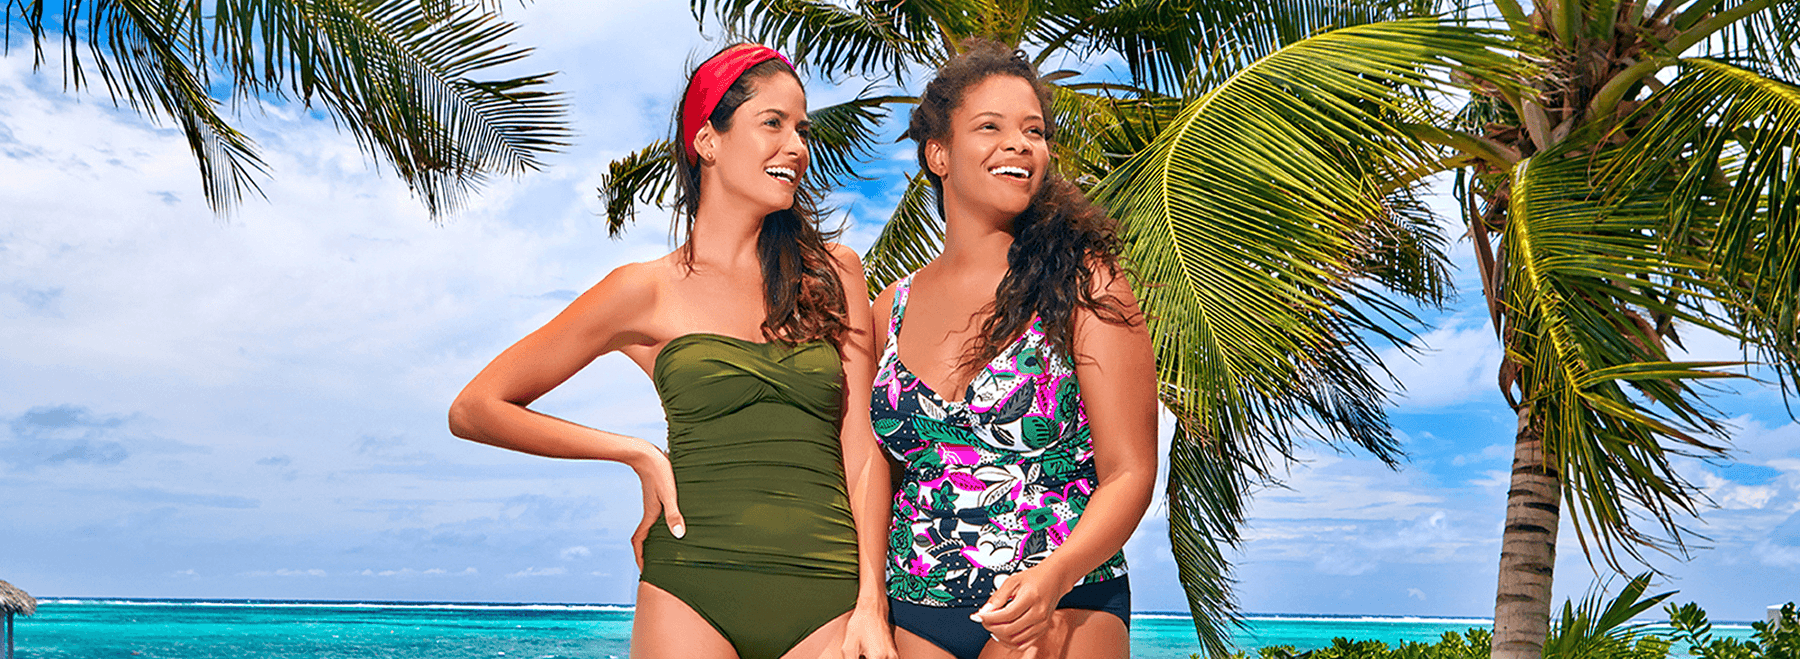 Why Its Easier To Buy Swimsuits for Women Over 40